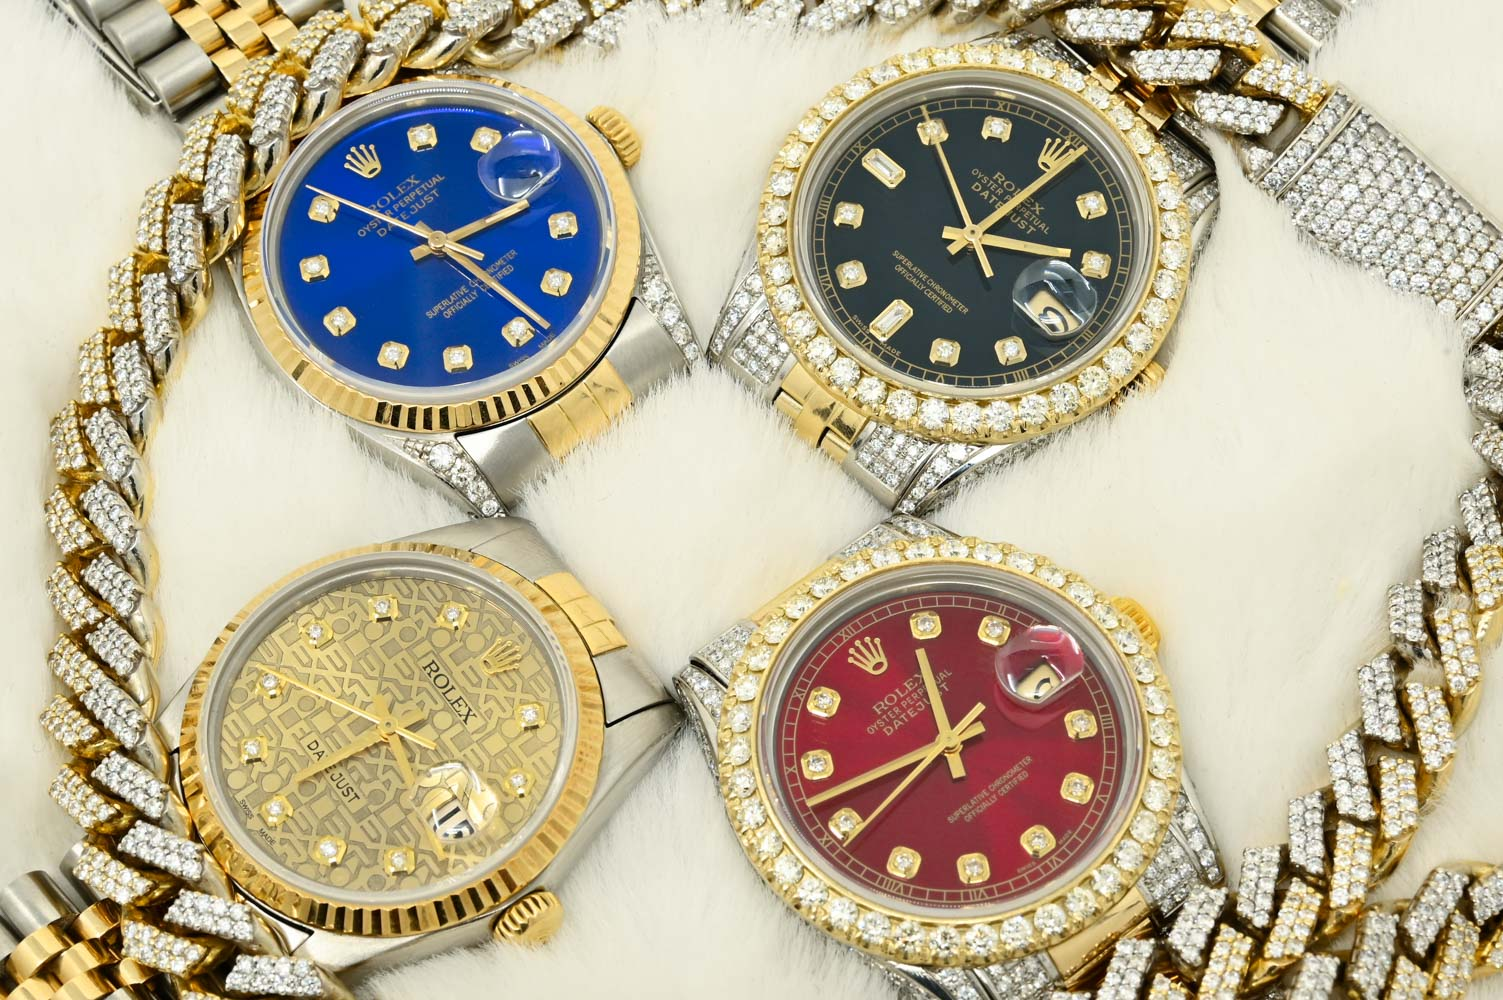 Montre Rolex Iced Out Diamant Datejust Authentique